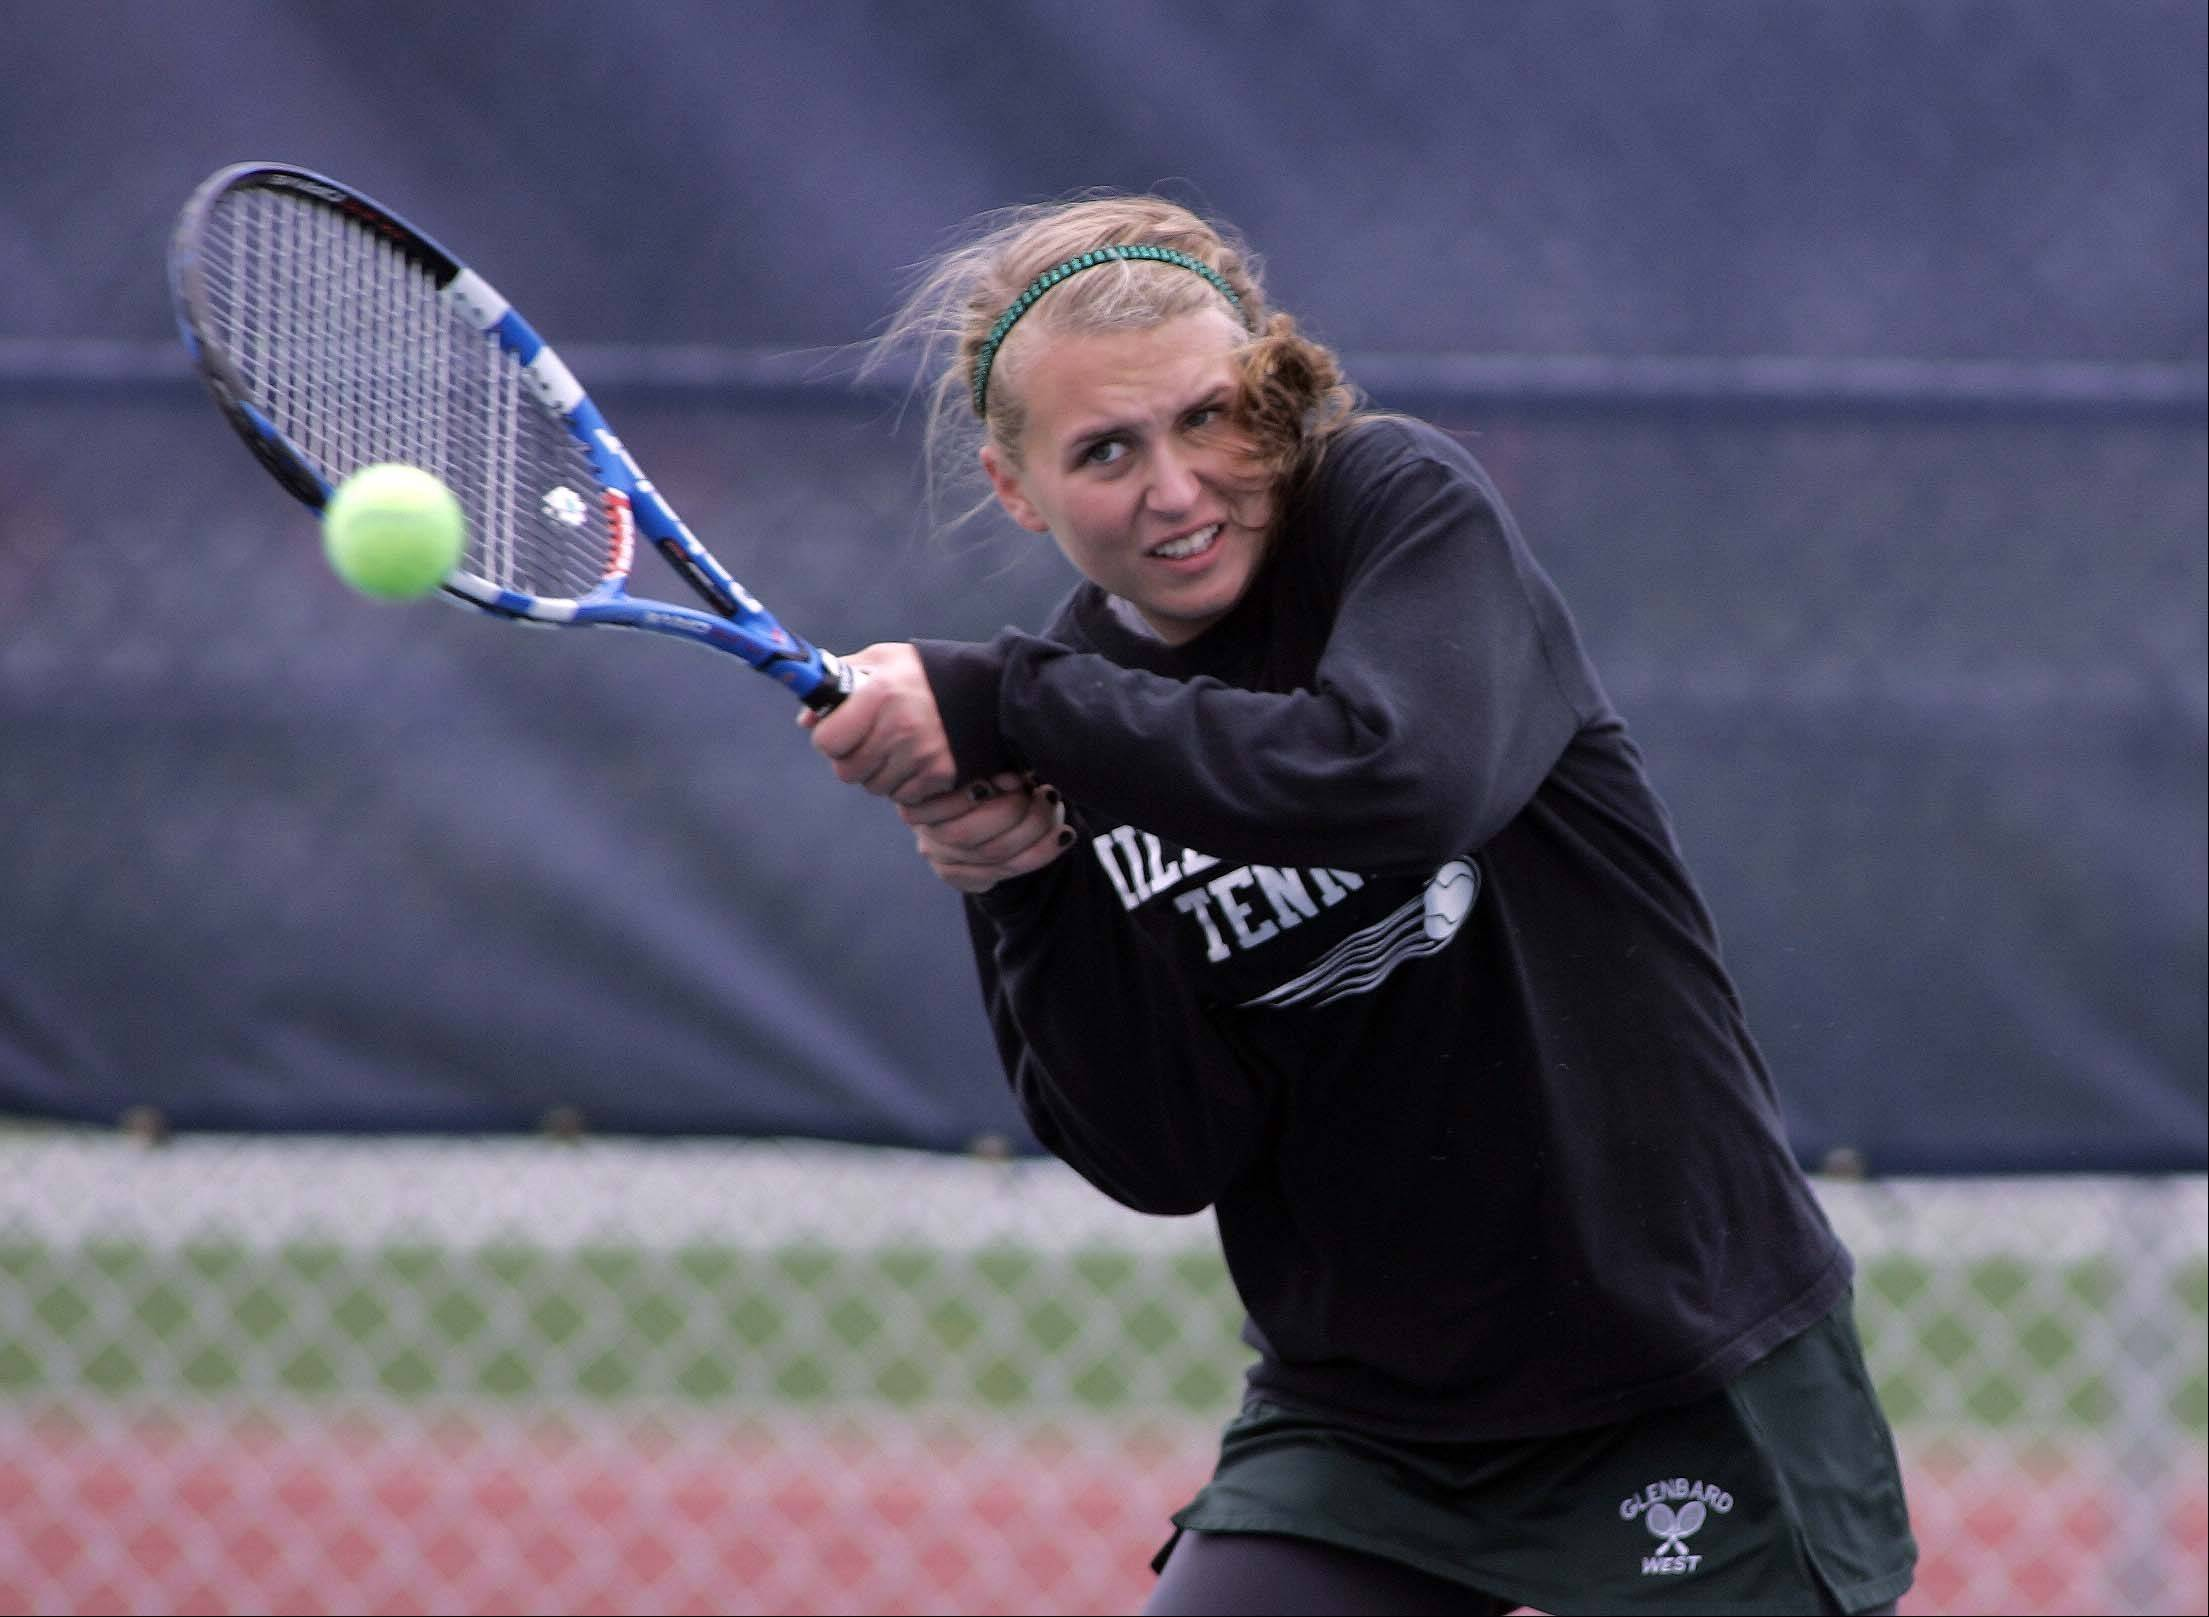 Glenbard West's Molly Hennessy in their doubles match against Carmel during the IHSA girls state tennis finals at Buffalo Grove High School Thursday October 18, 2012.